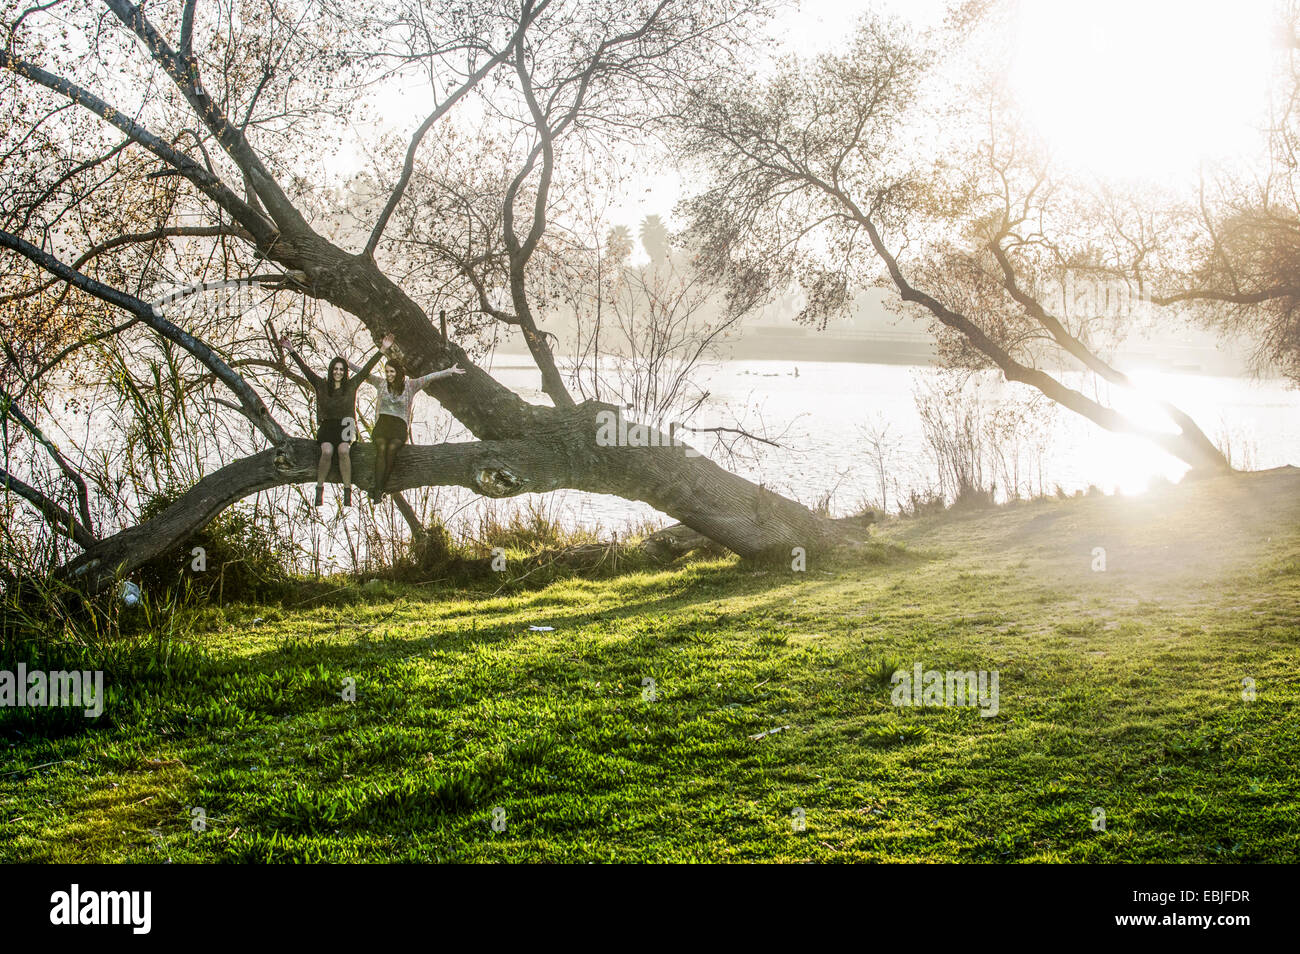 Two young women sitting in tree, arms outstretched - Stock Image